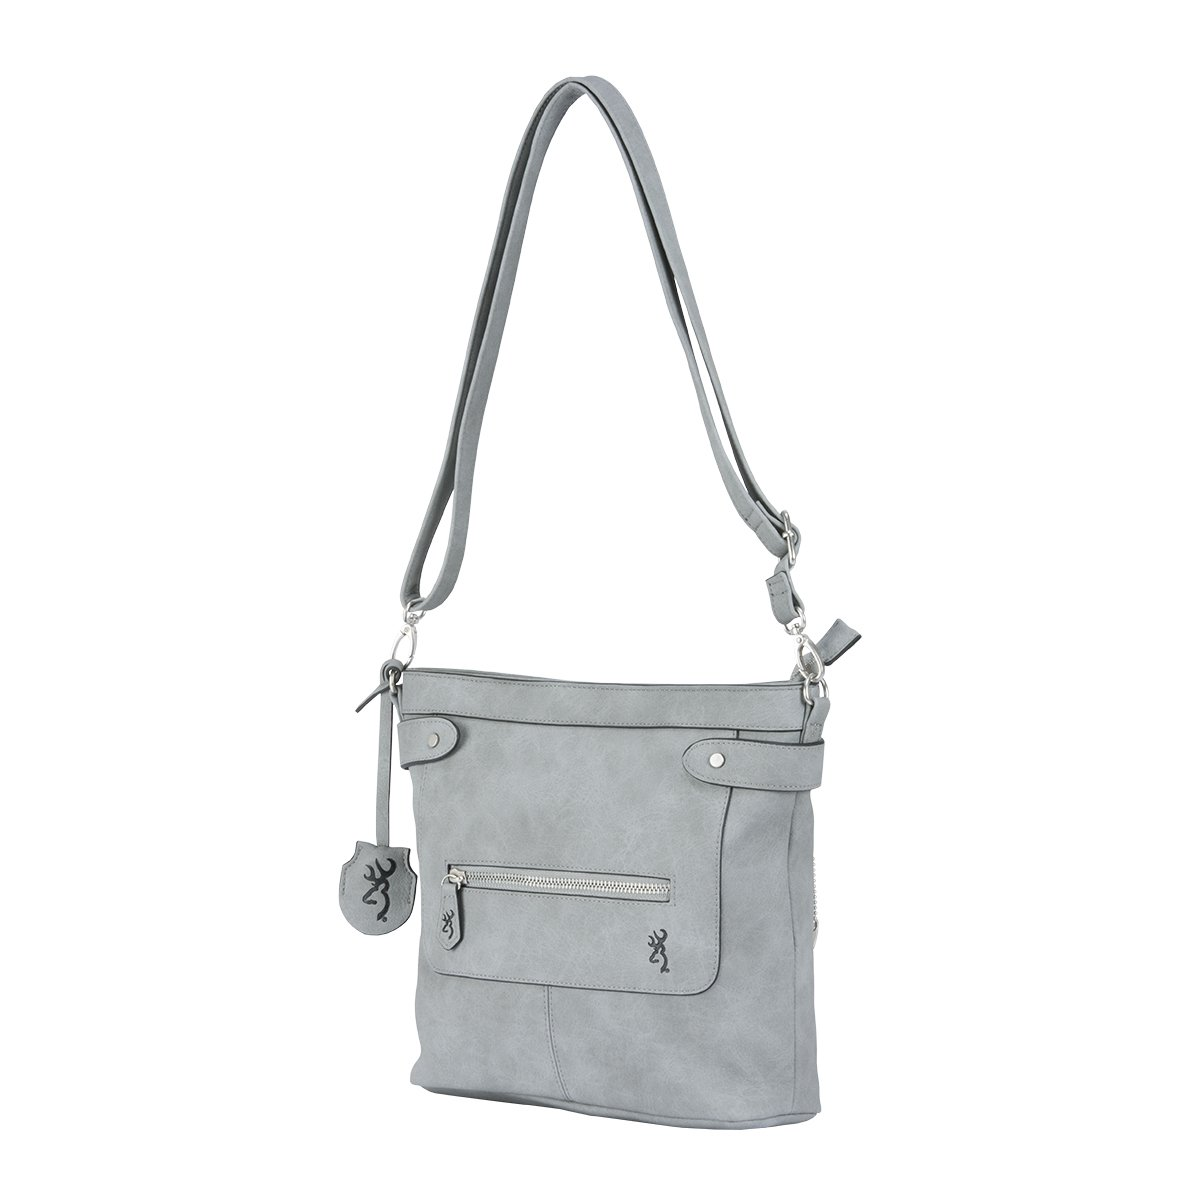 Browning Catrina Concealed Carry Purse, Grey, Faux Leather, Medium